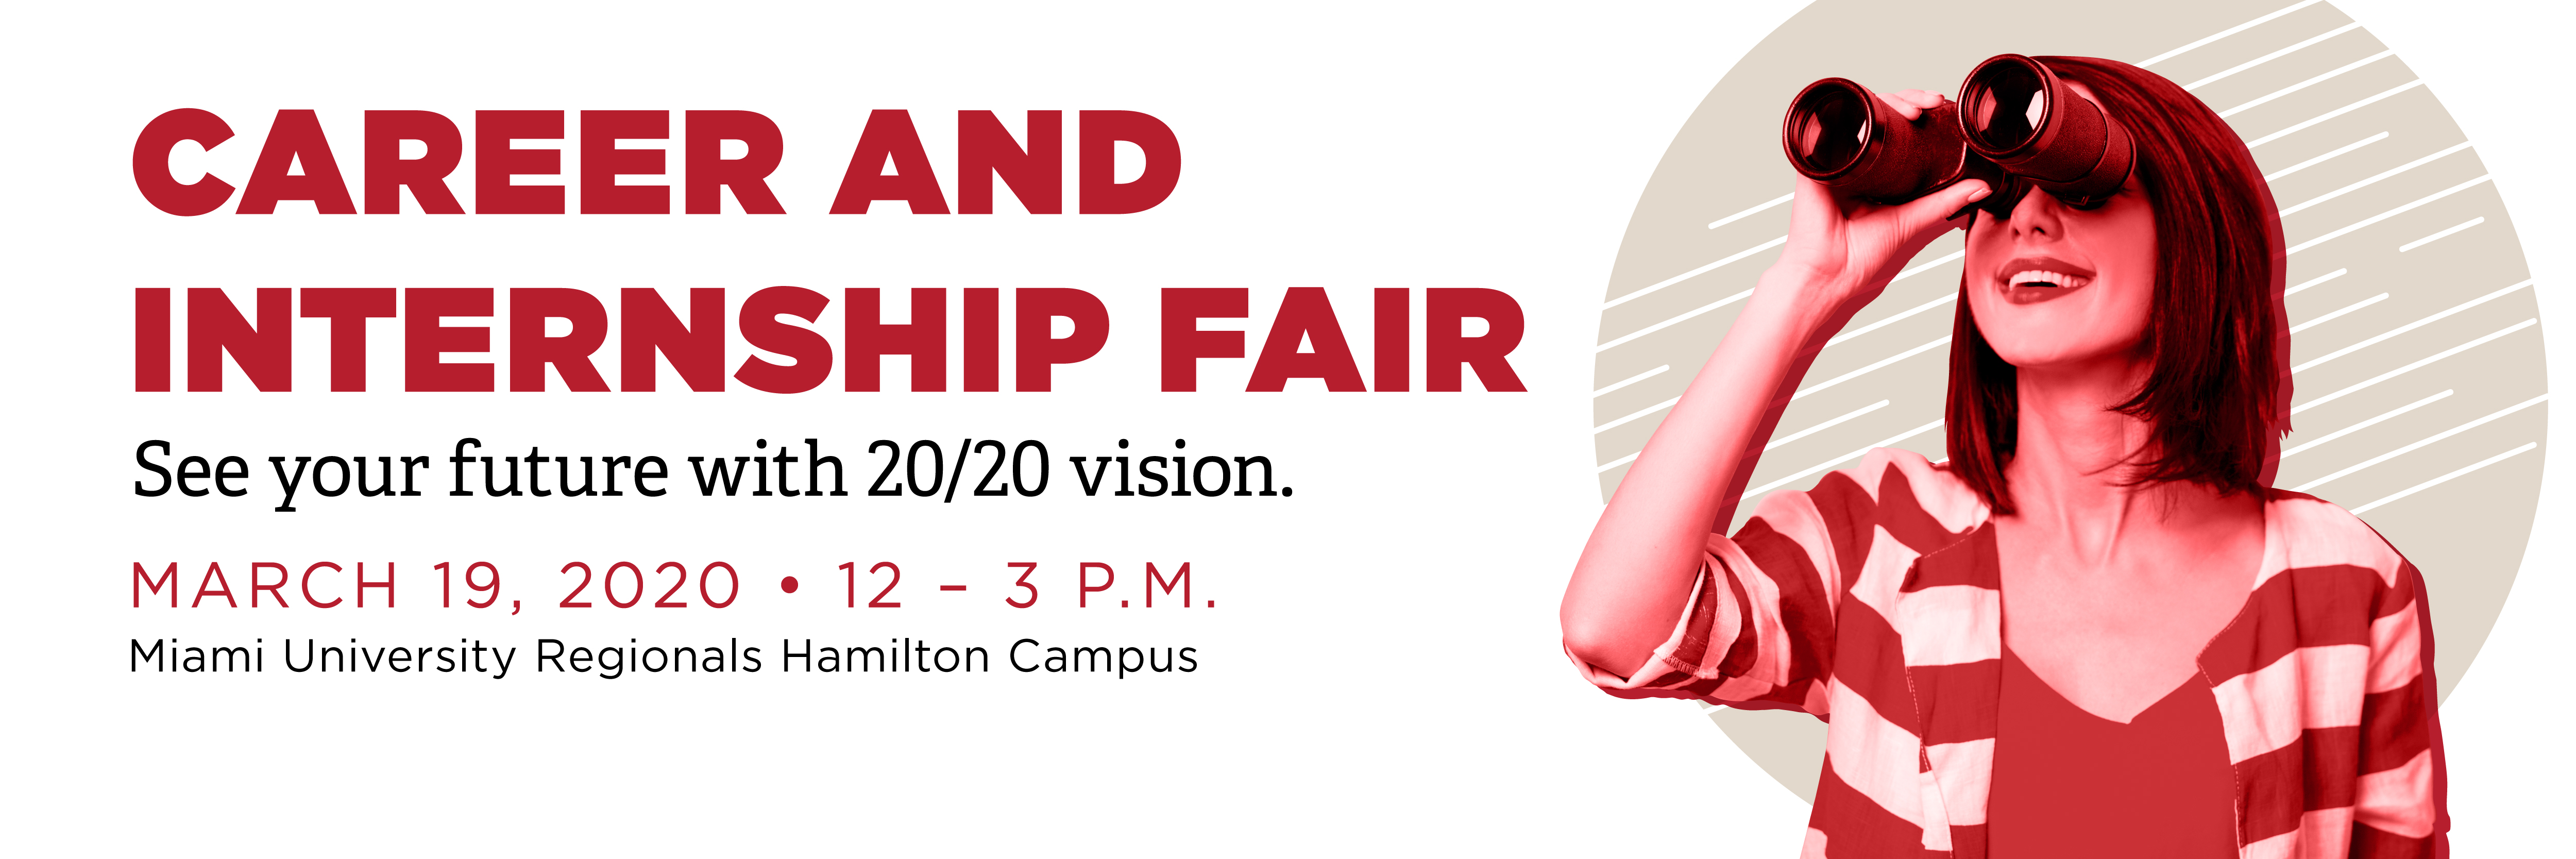 Career and Internship Fair. See Your Future with 20/20 Vision.